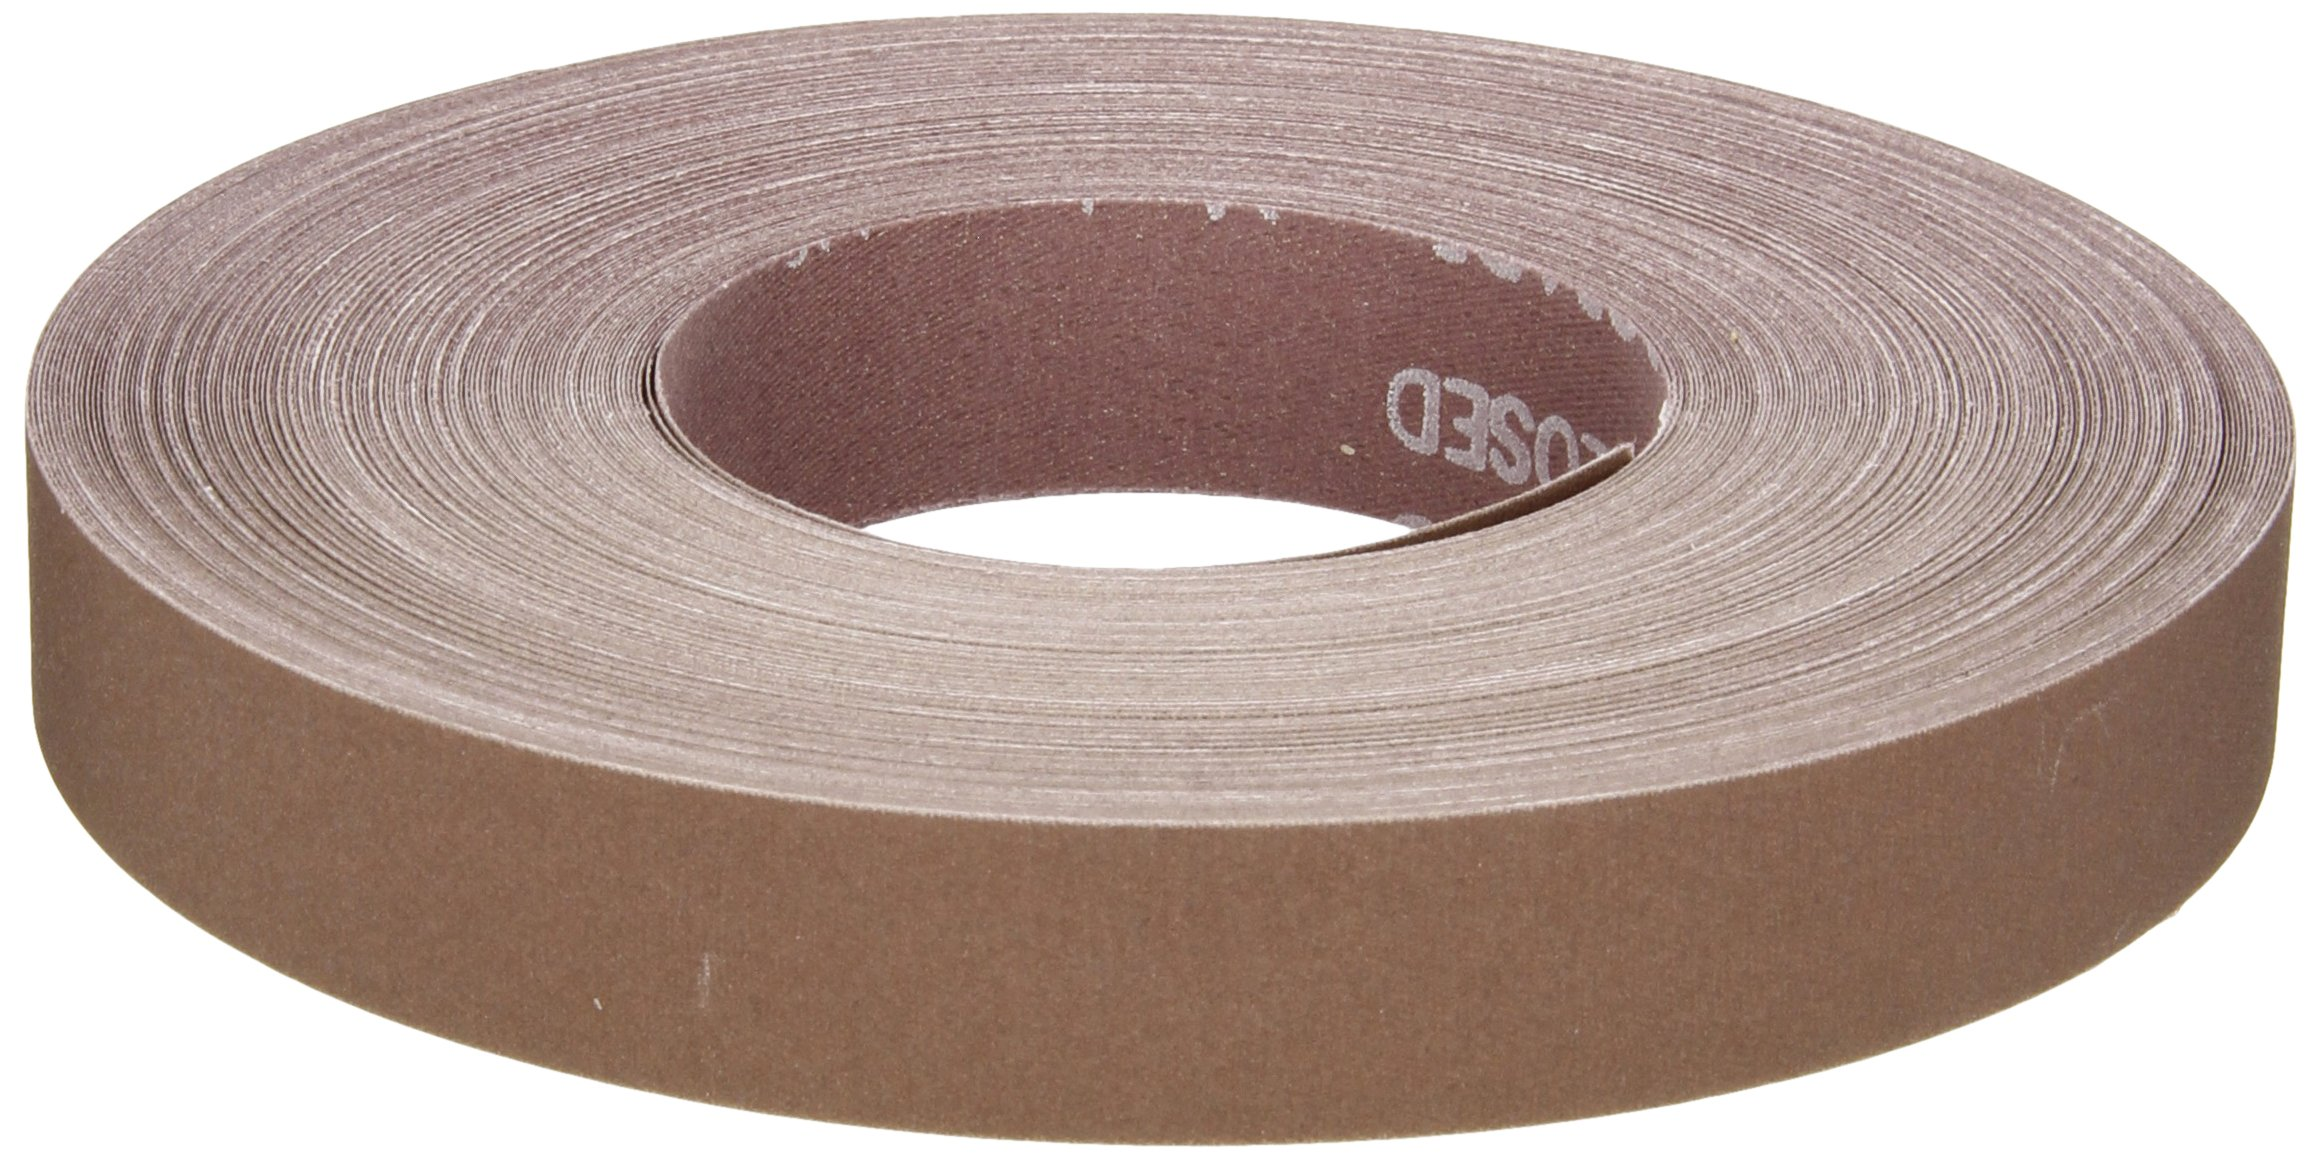 Norton K225 Metalite Abrasive Roll, Cloth Backing, Aluminum Oxide, 1'' Width x 50yd Length, Grit P400 (Pack of 5) by Norton Abrasives - St. Gobain (Image #1)